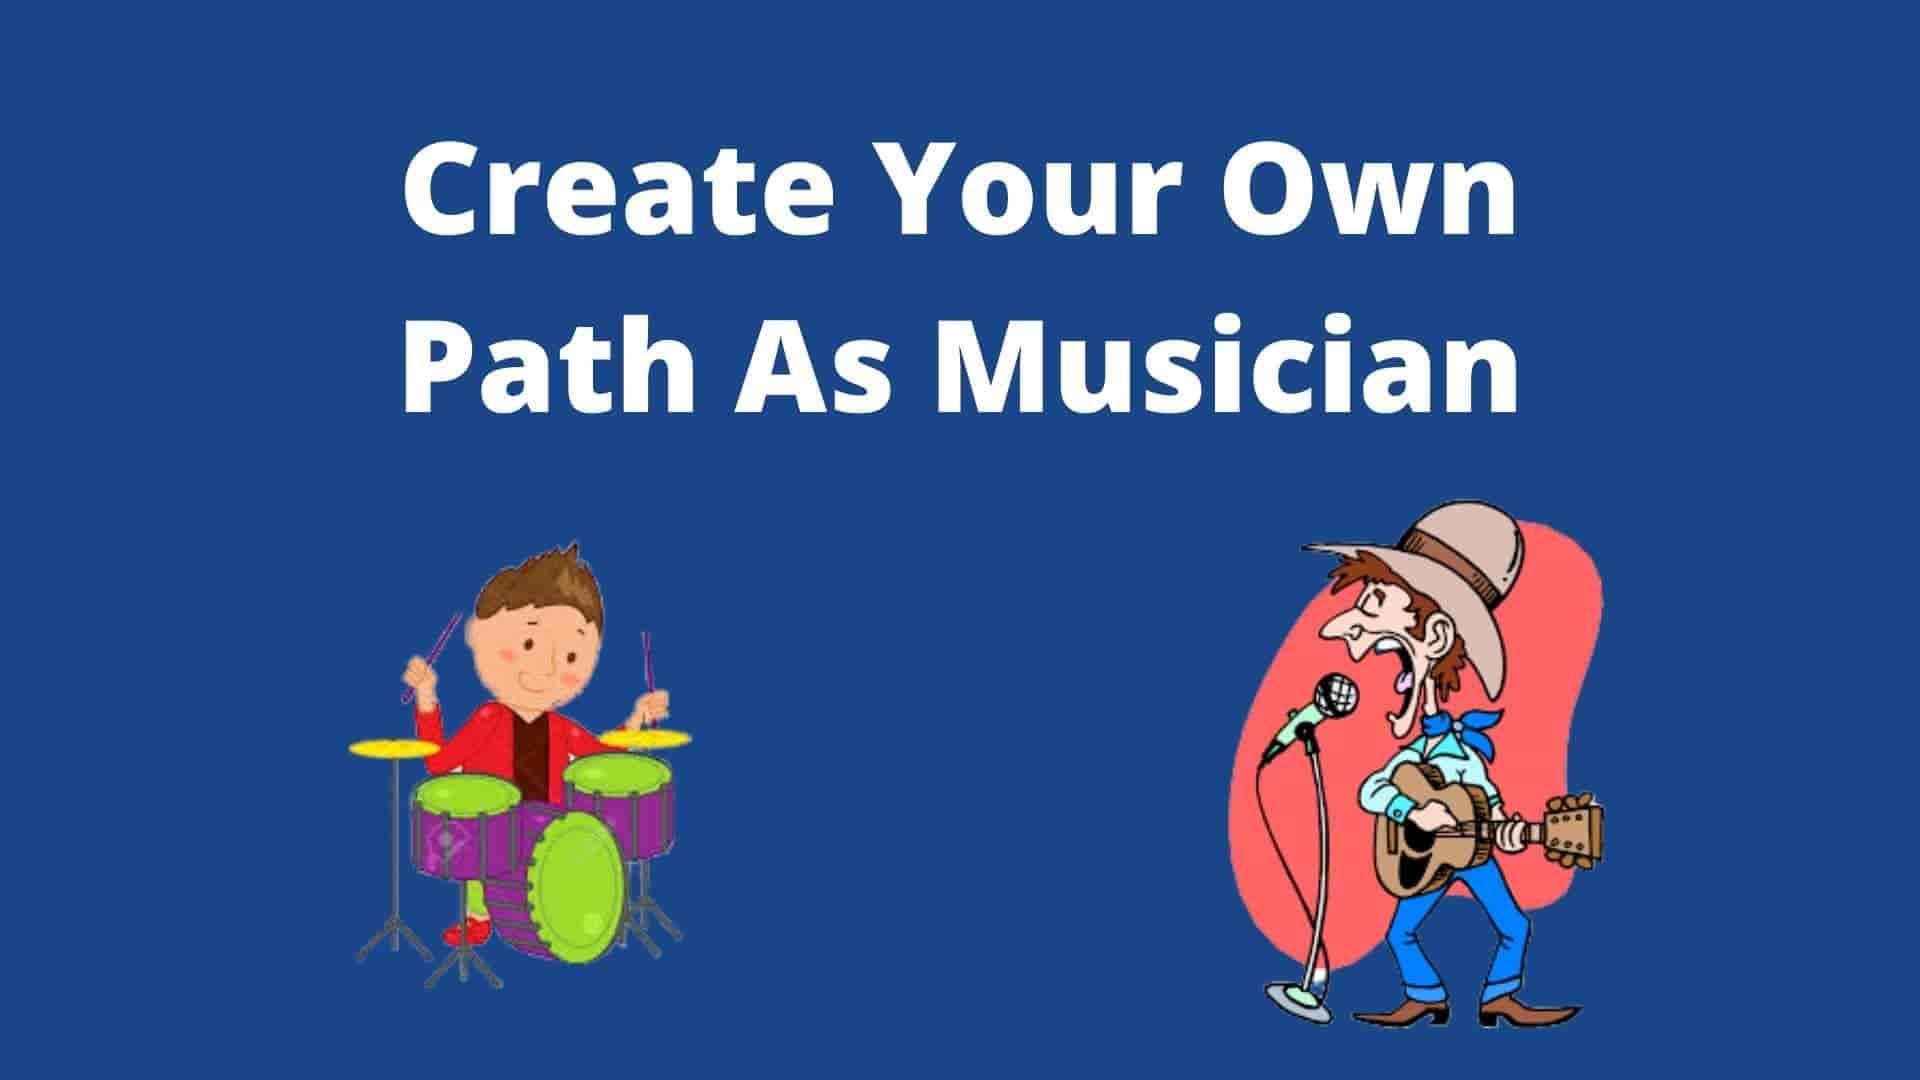 Create Your own Path As Musician